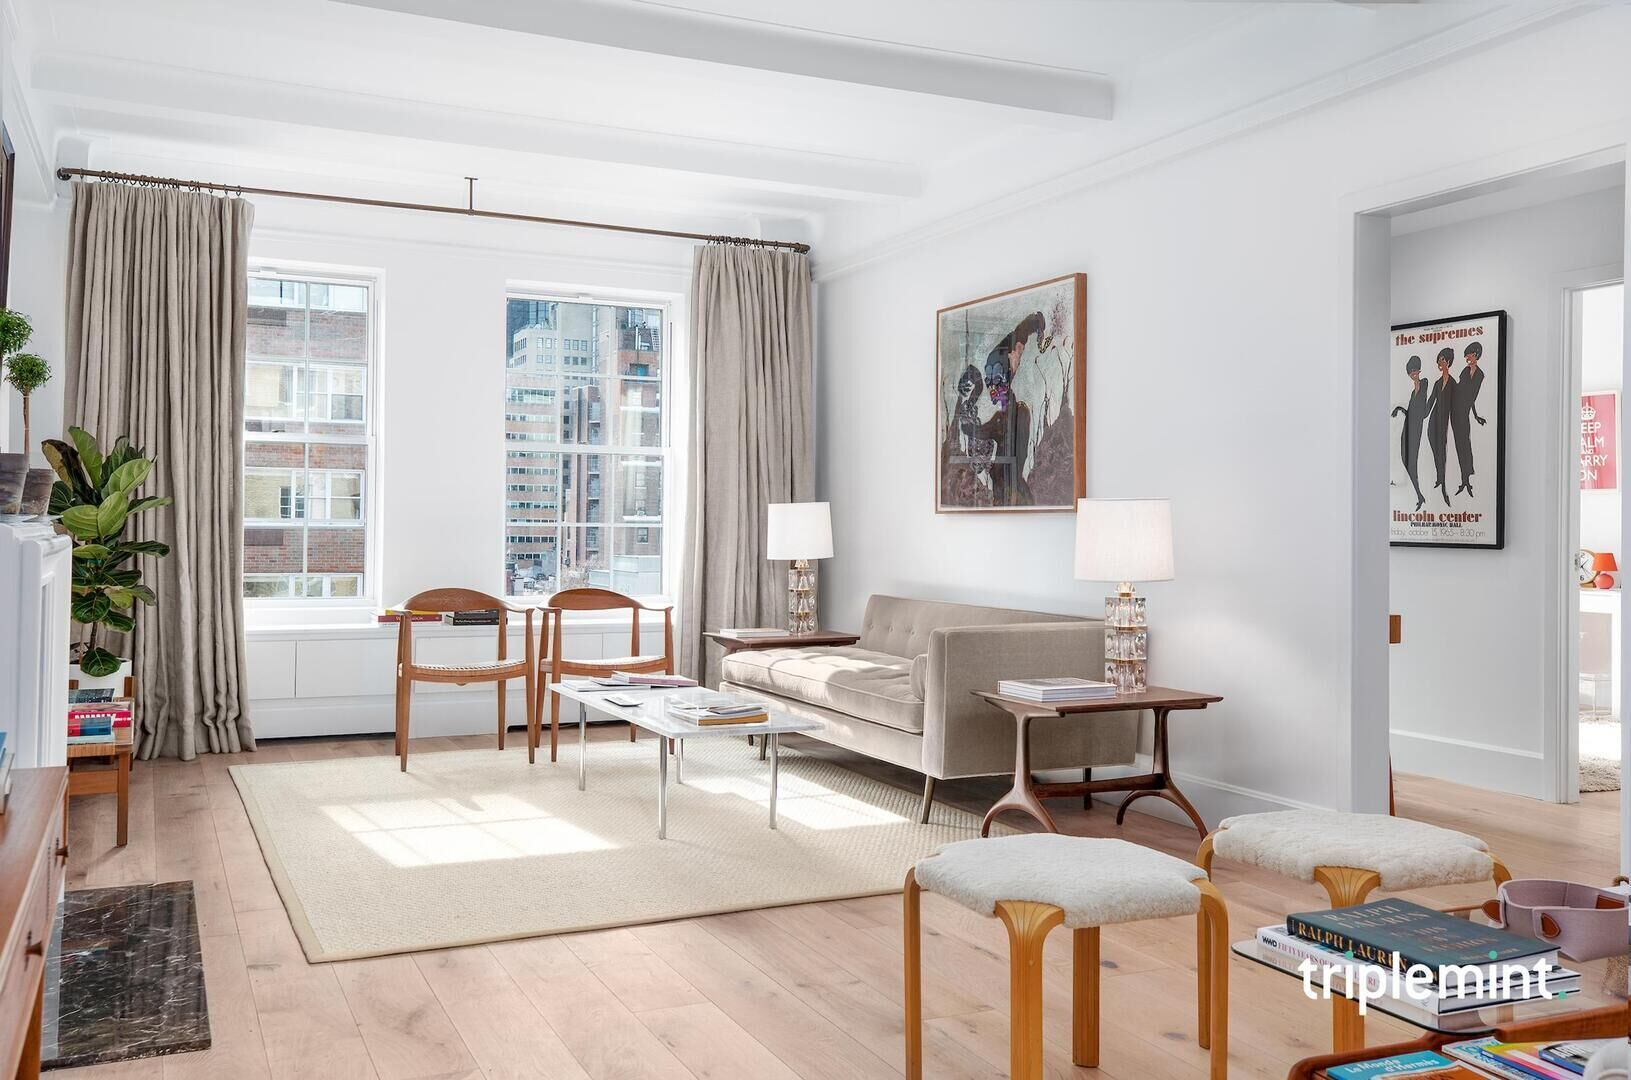 Apartment for sale at 136 East 64th Street, Apt 9-F